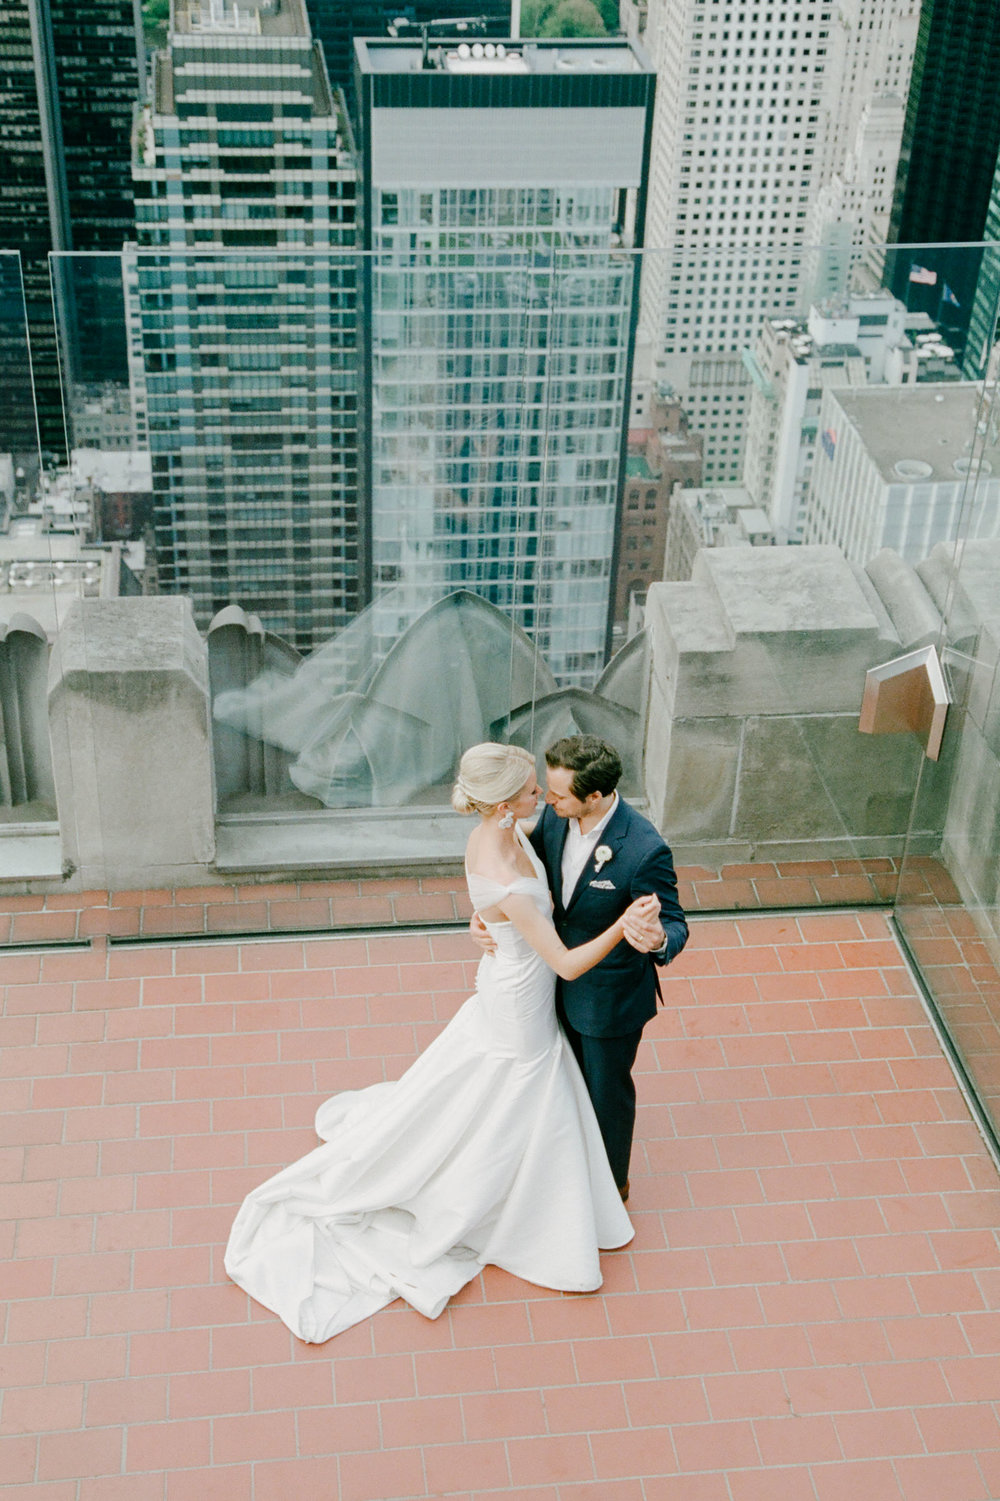 Intimate-NYC_wedding_ by Tanya Isaeva-173.jpg